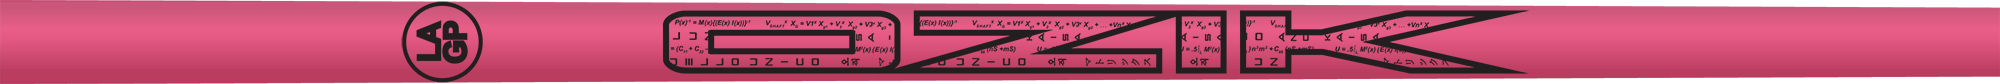 Ozik TPHDe: Neon Pink Black Satin - Wood 71 XX